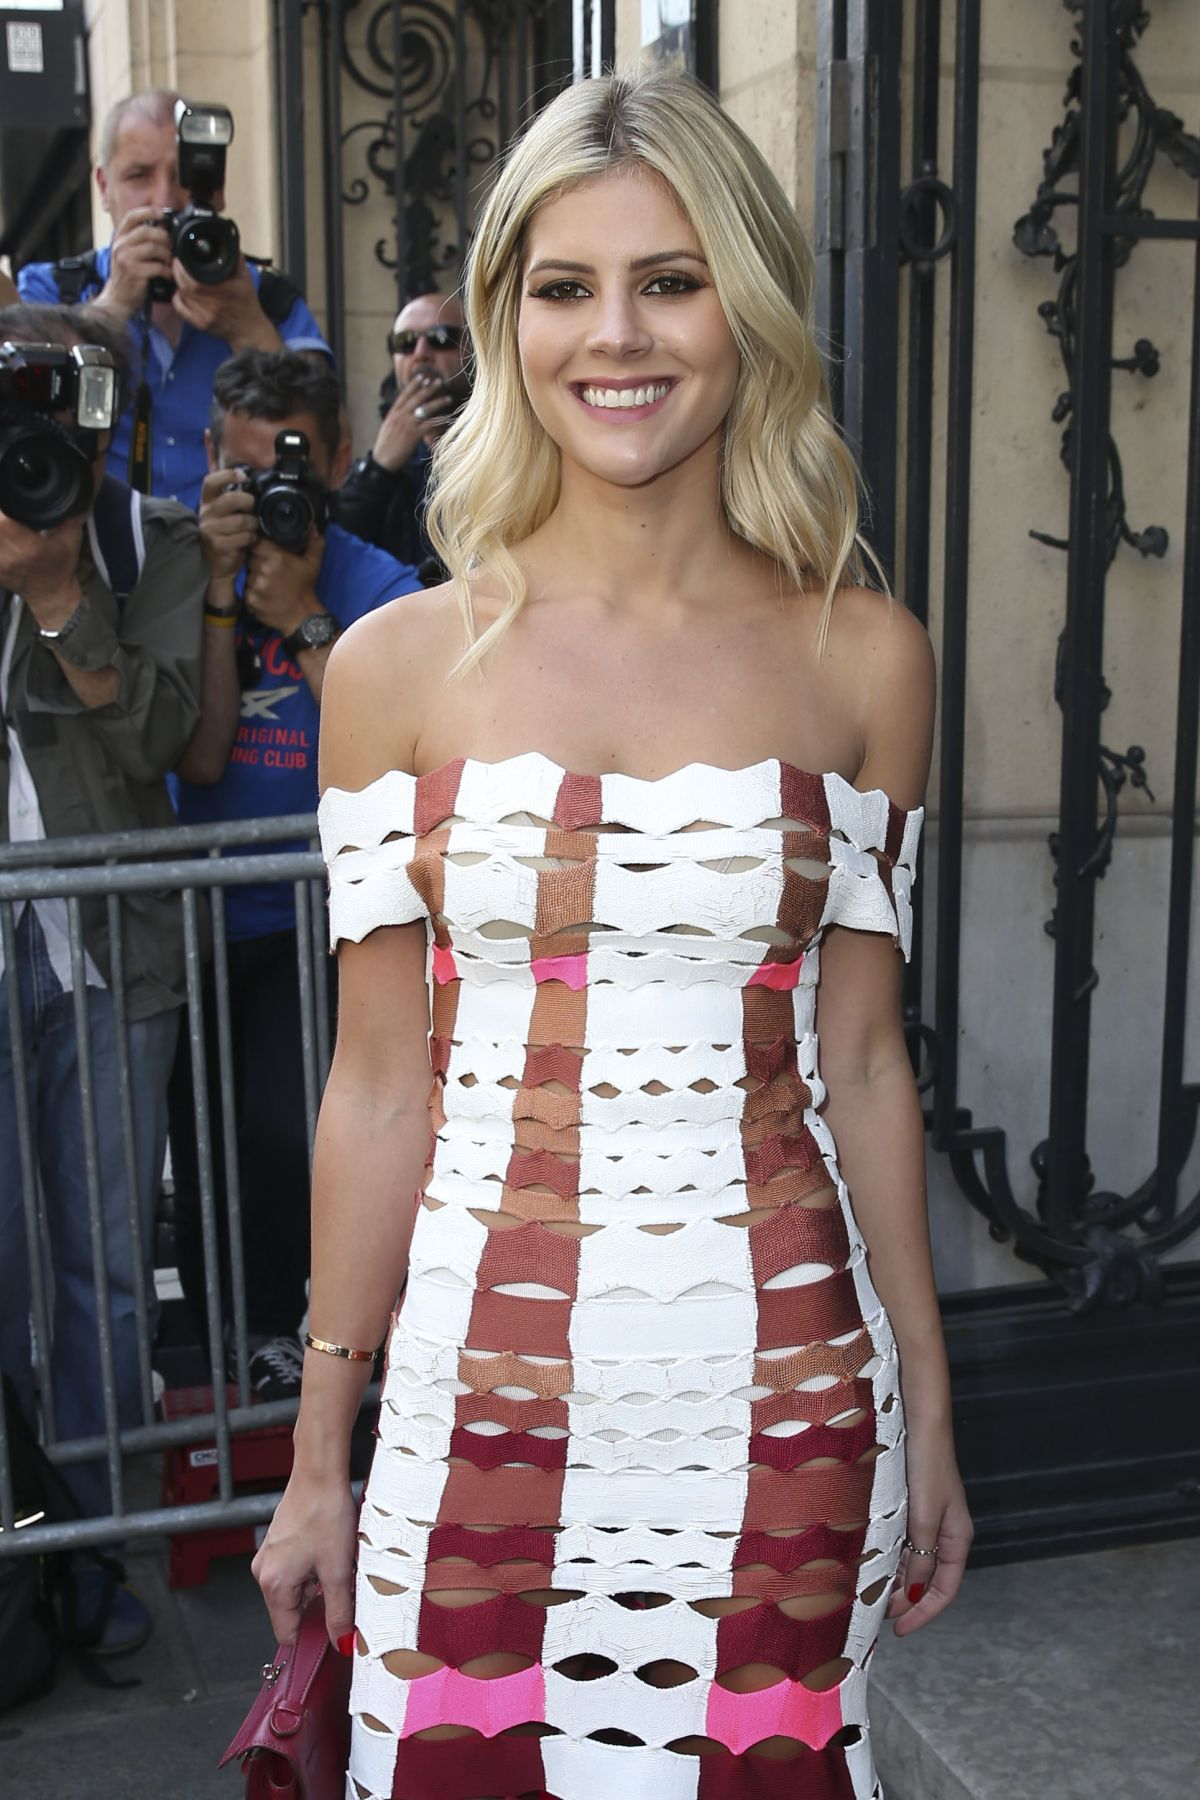 LALA RUDGE at Jean-Paul Gaultier Haute Couture Fall/Winter 2016/2017 Fasion Show in Paris 07/06/2016